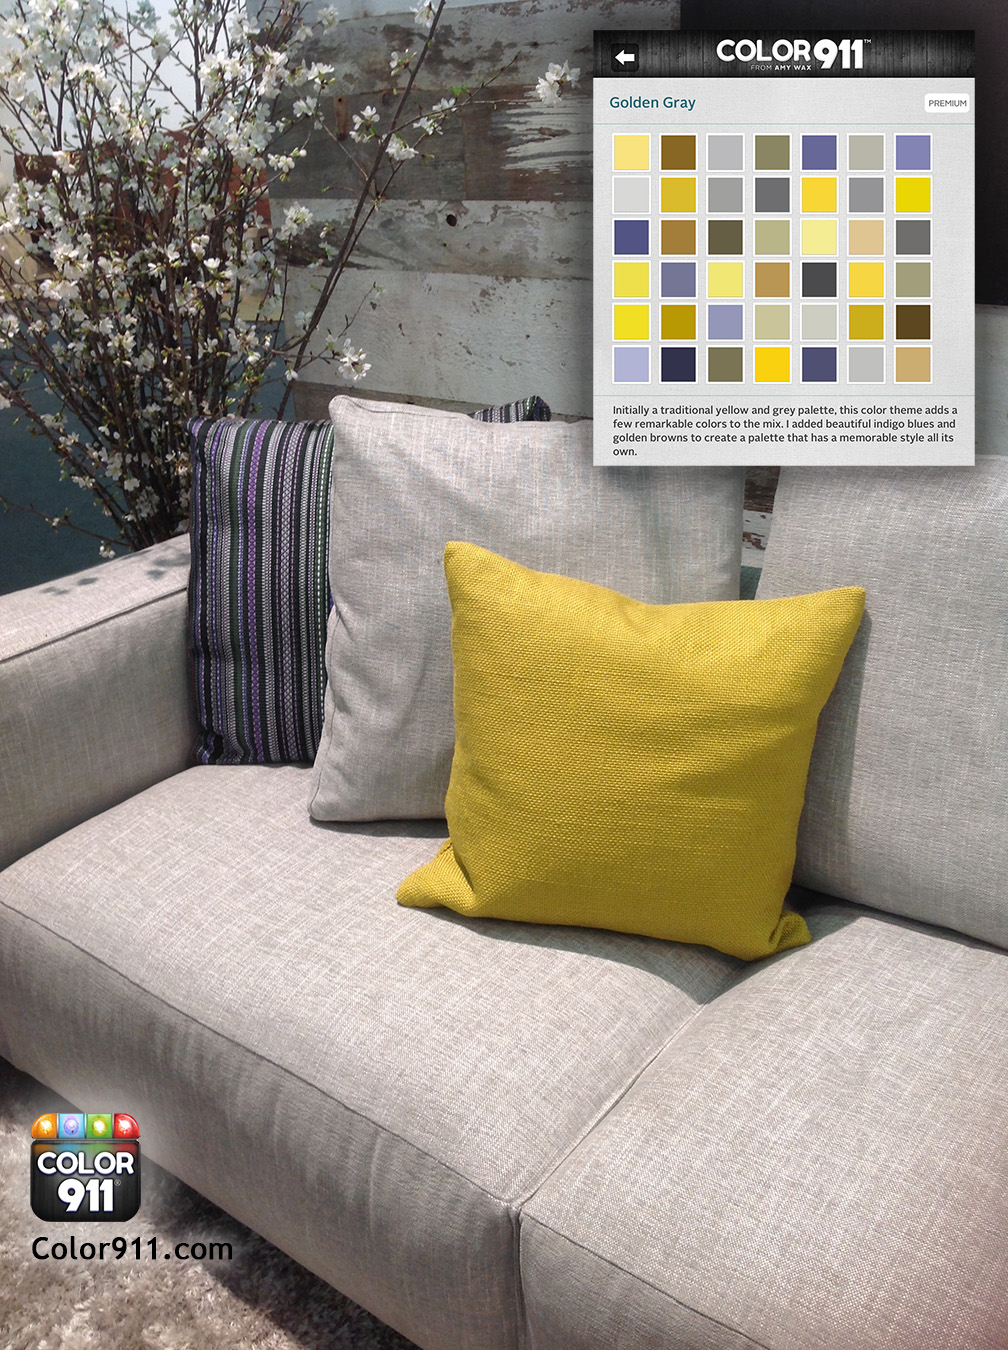 Color911 - ADHDs2014 - Gray sofa - Golden Gray